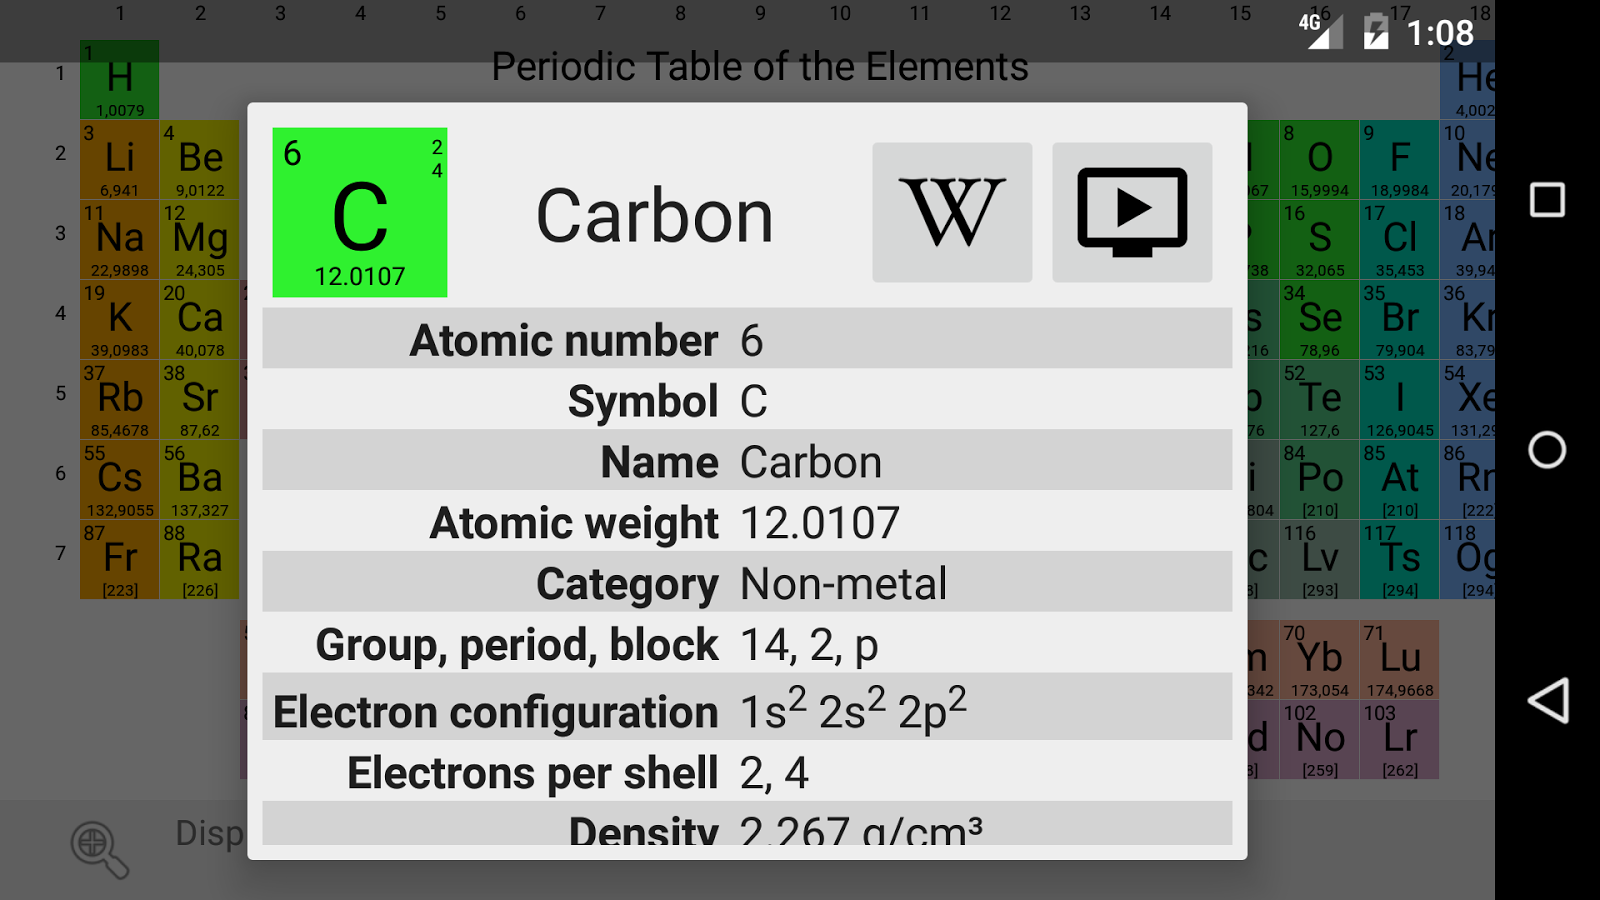 Elementary periodic table 086 apk download android books elementary periodic table 086 screenshot 2 urtaz Choice Image